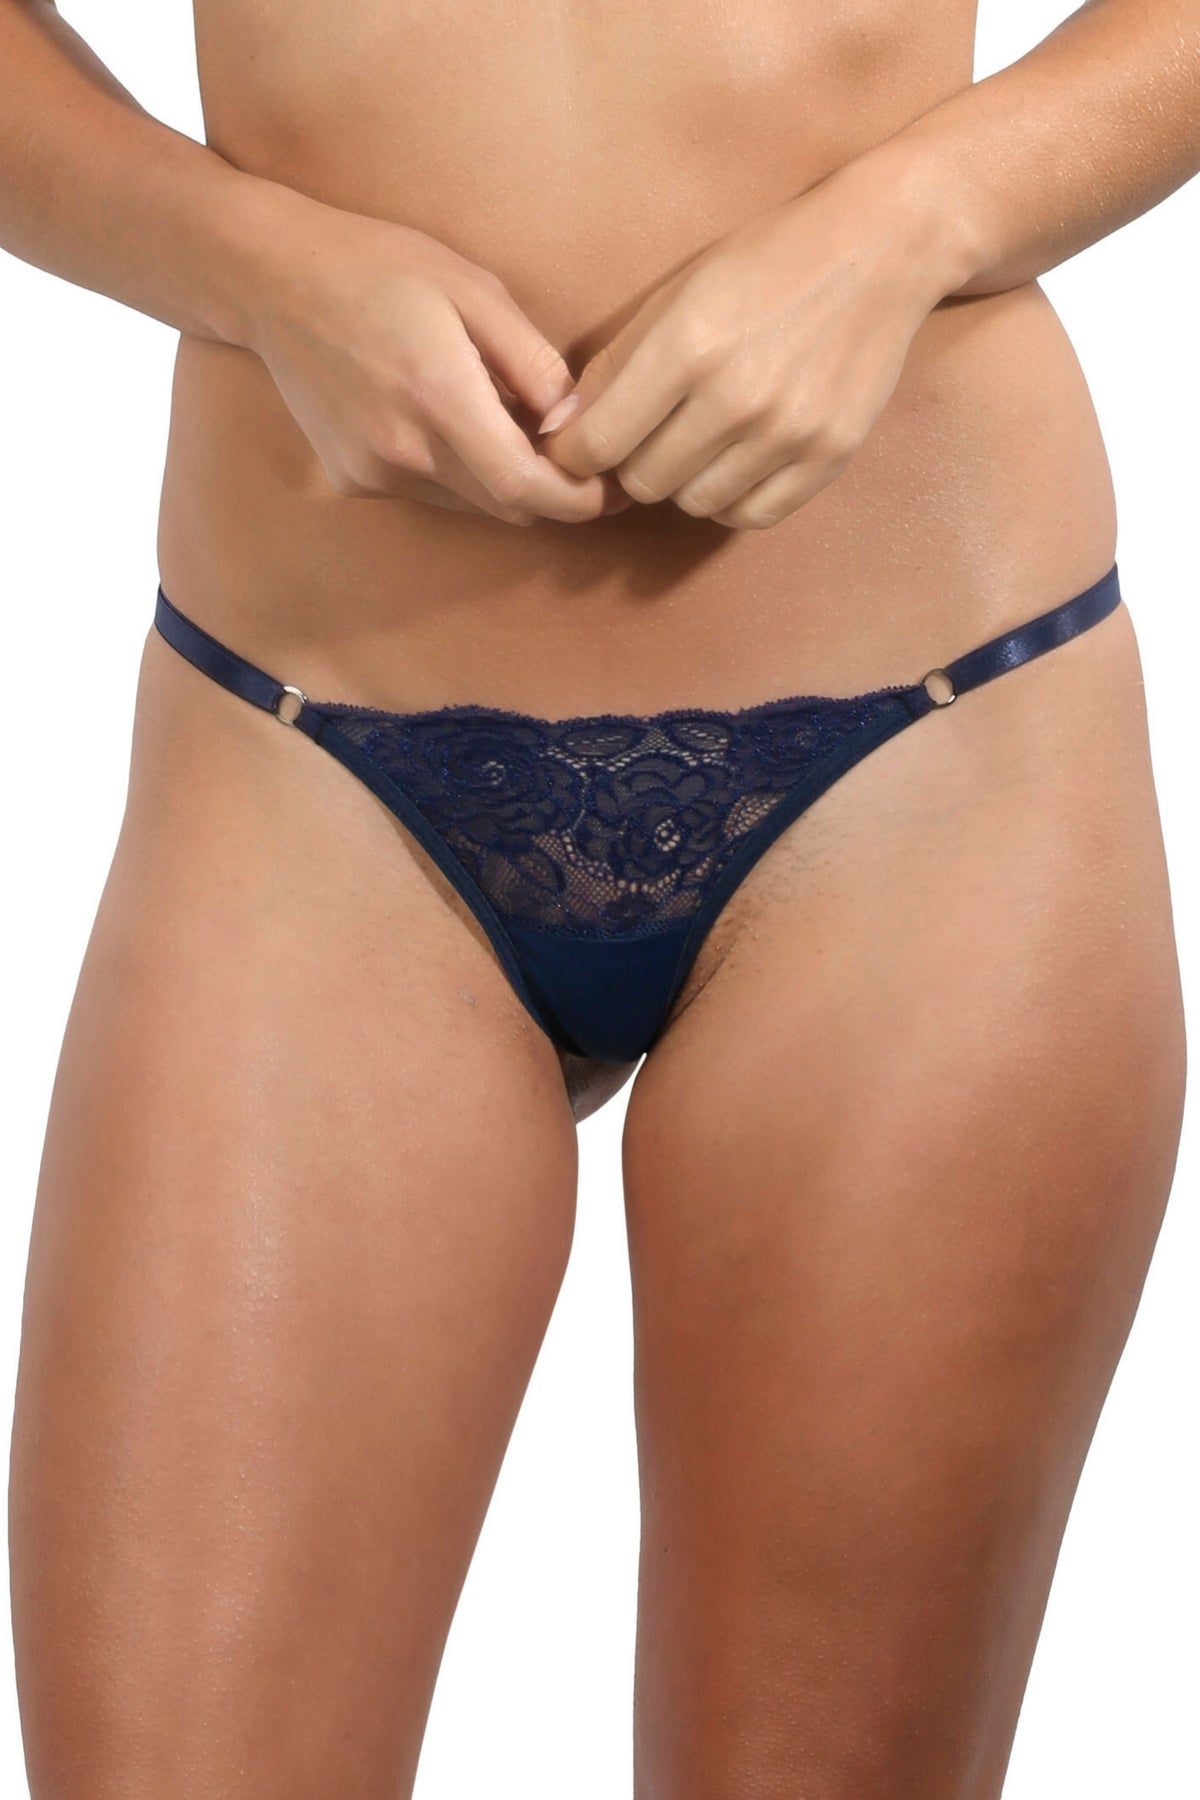 Navy Lace Thong String Underwear Women